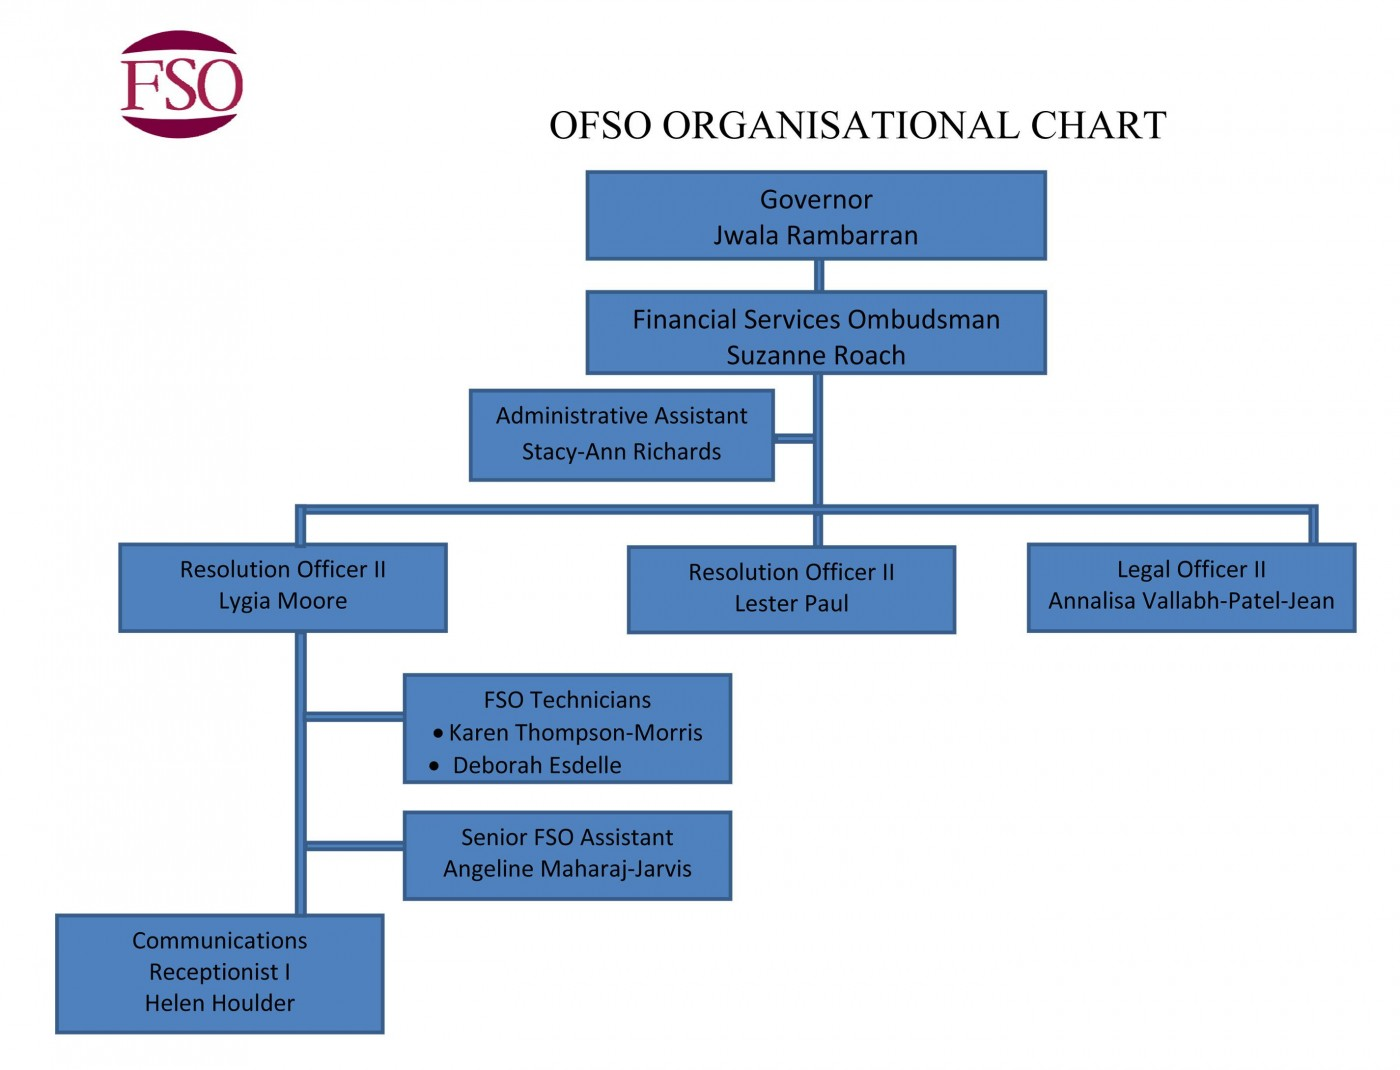 003 Unusual Organization Chart Template Word 2013 Idea  Organizational Free1400